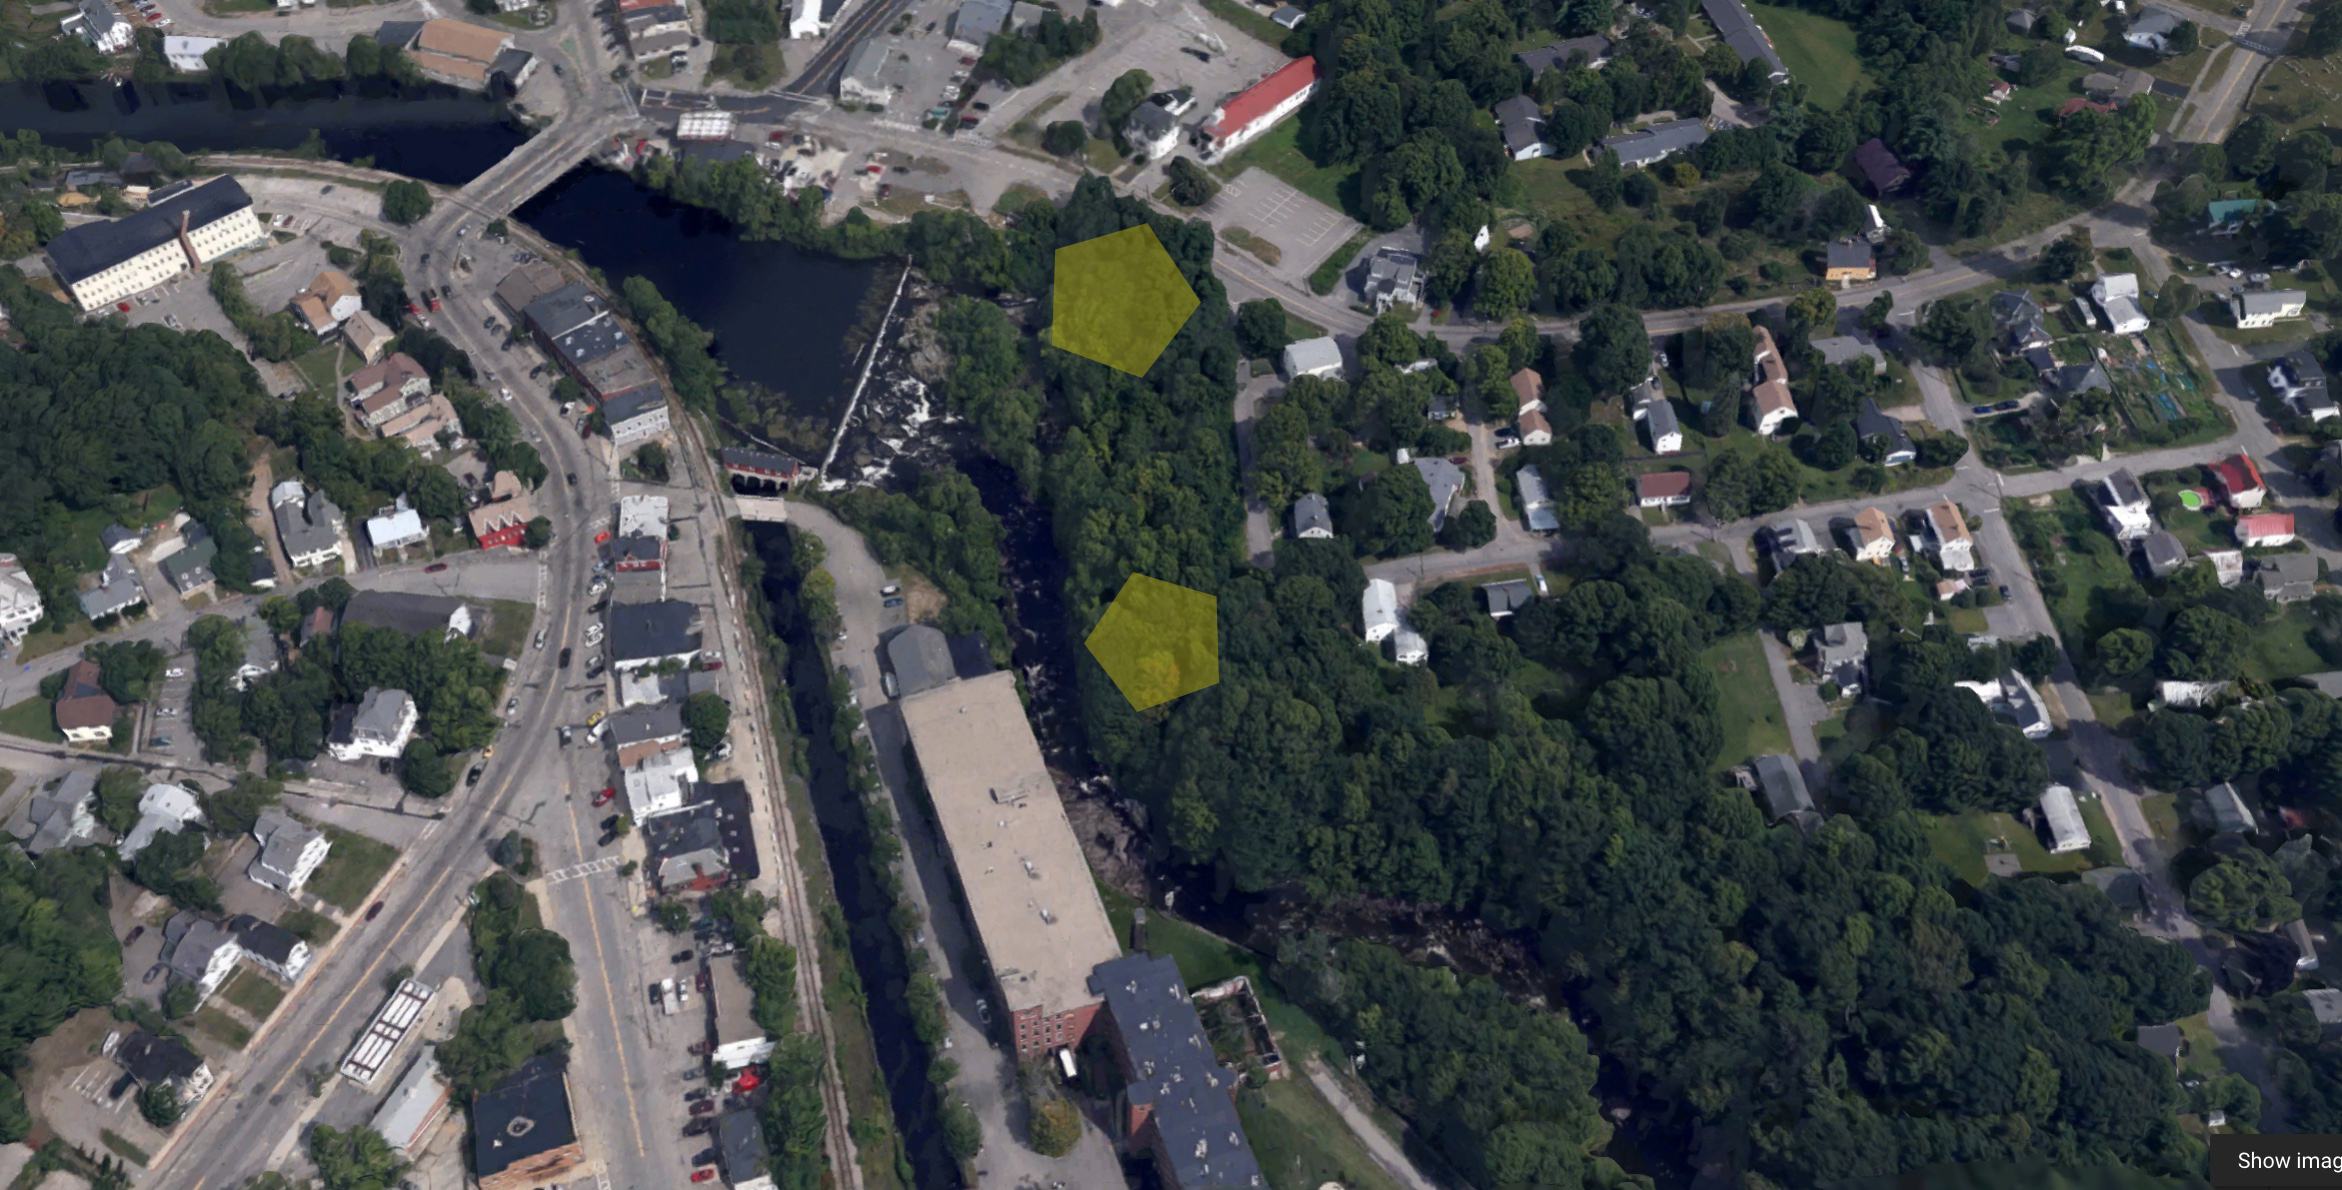 Site of two landings on the north and south ends of the riverbank along the Salmon Falls River, below the Great Falls Dam and alongside Saw Mill Hill Road and Moulton Street in Berwick.